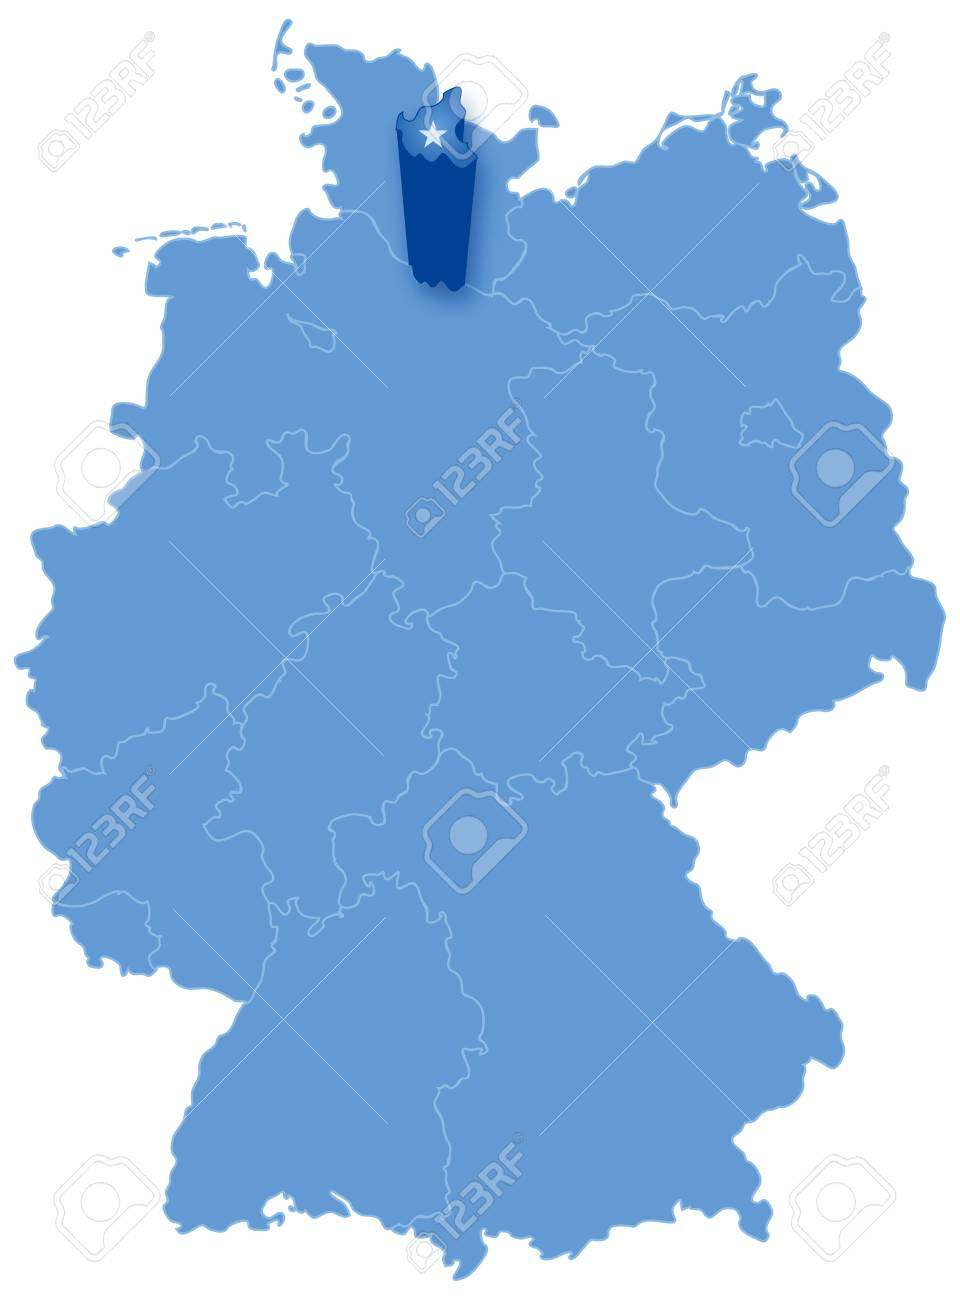 Political Map Of Germany With All States Where Hamburg Freie